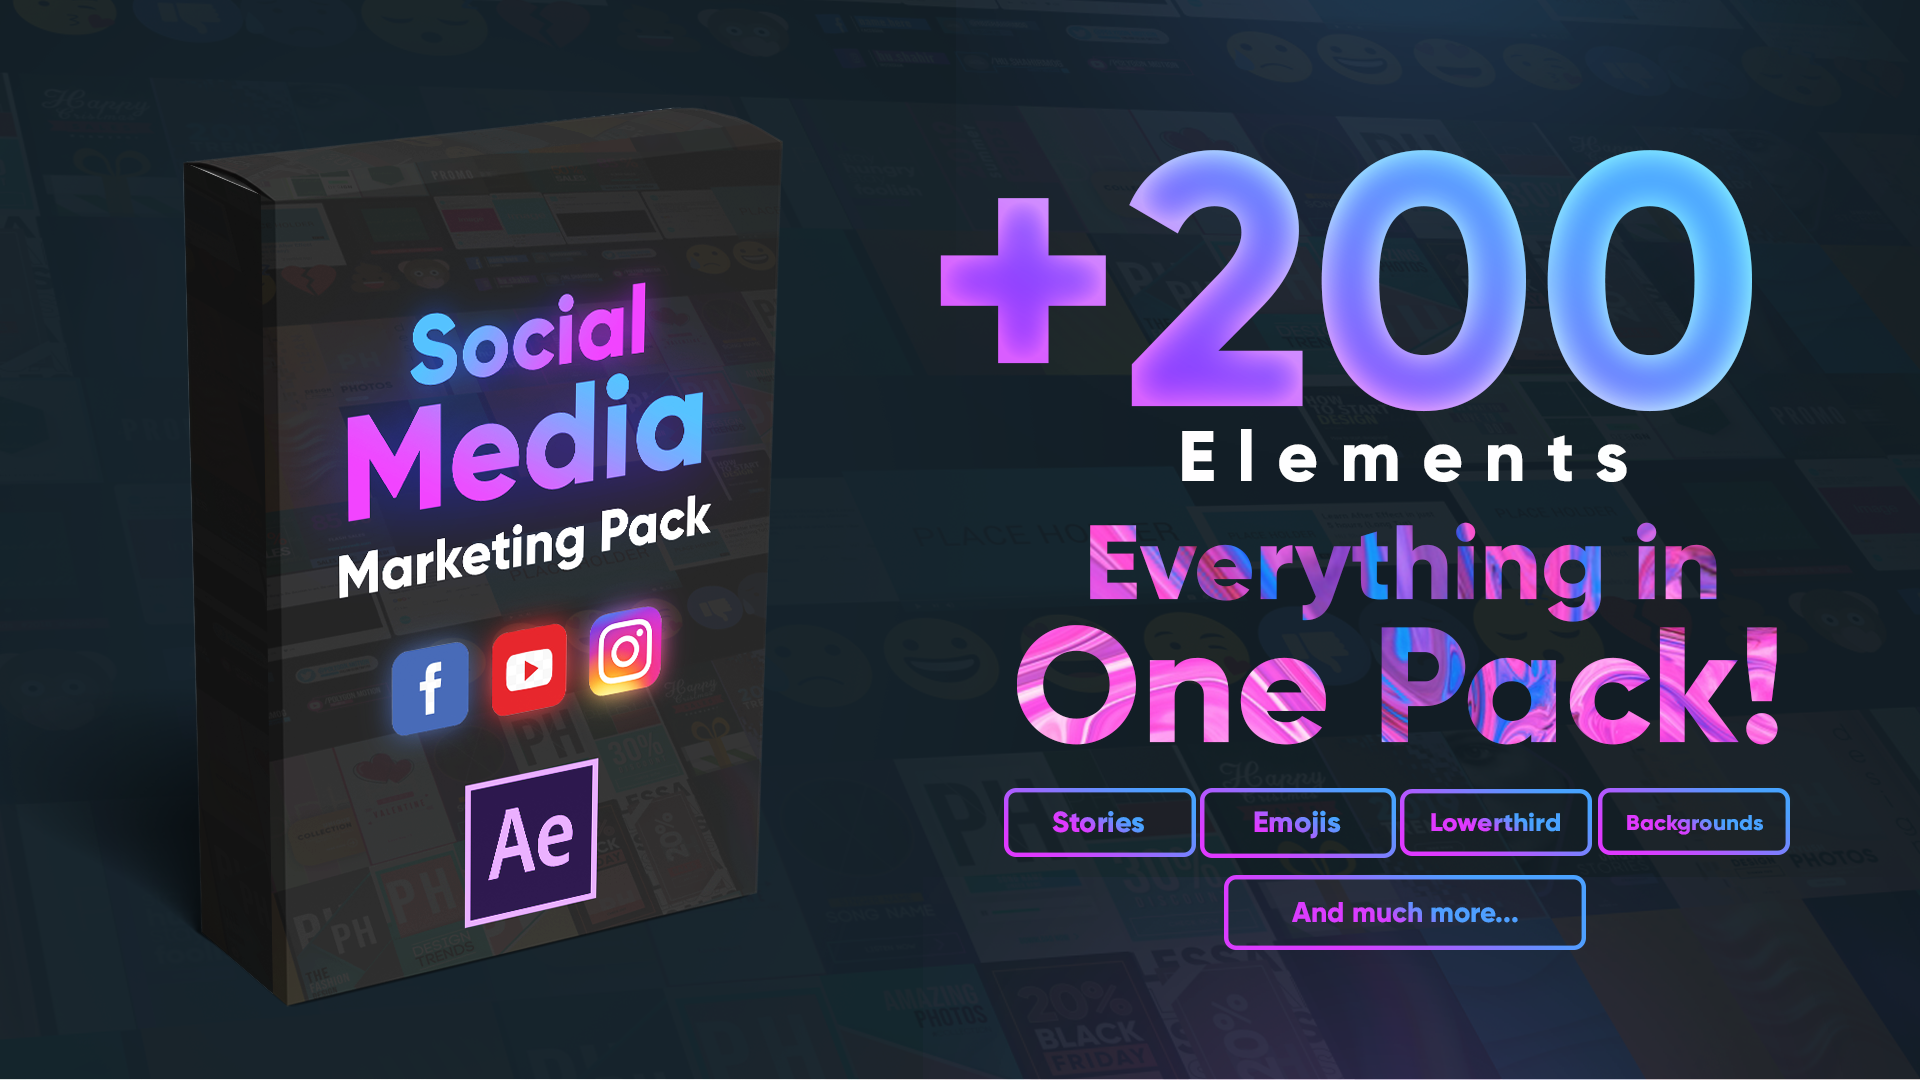 Social Media Marketing Pack